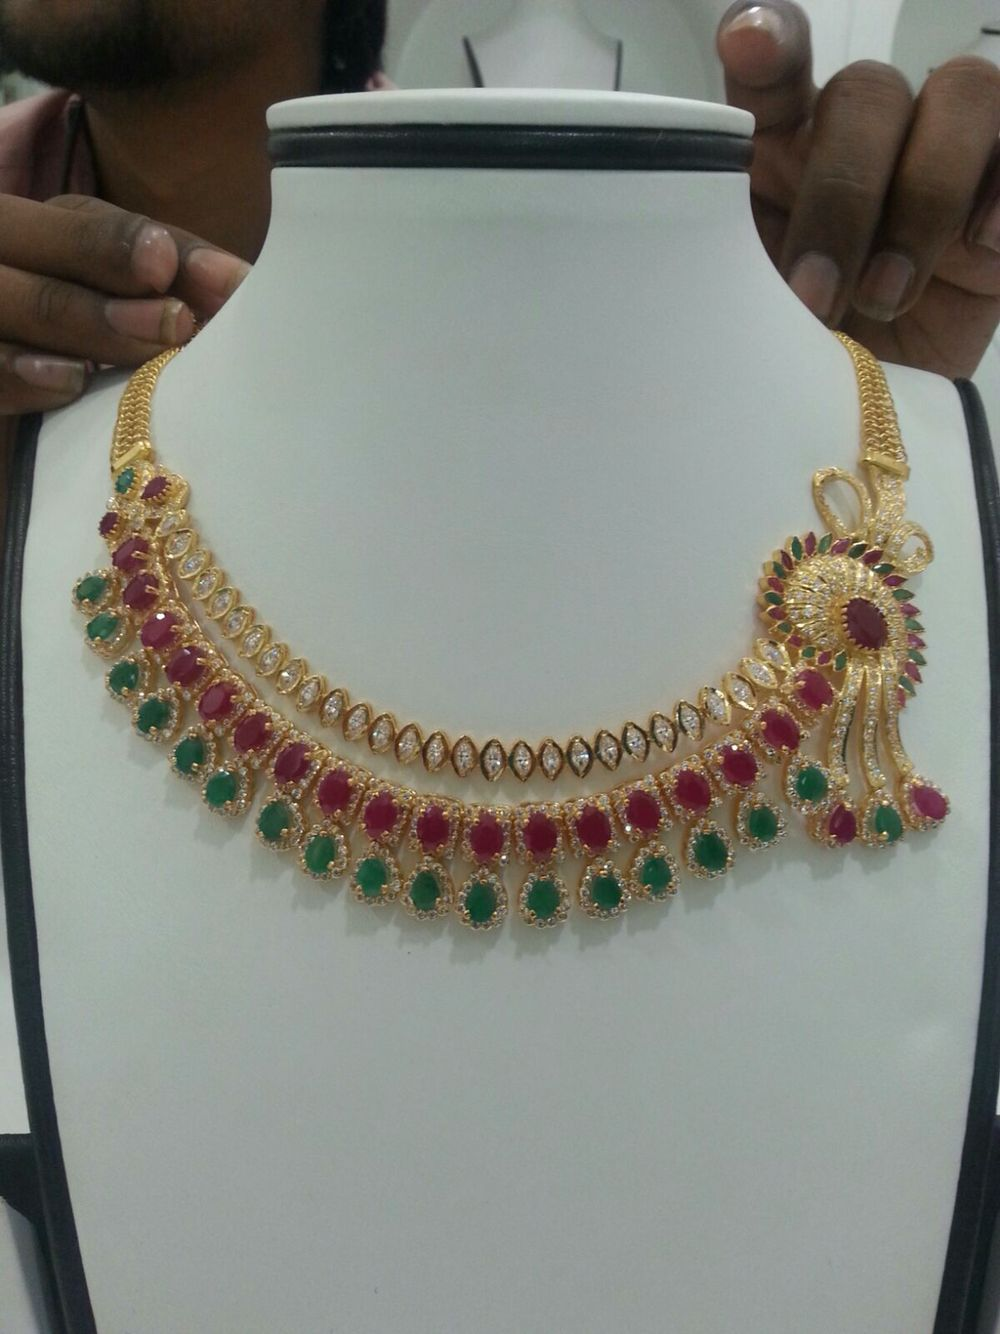 Ruby and emerald haram pinterest emeralds india jewelry and jewel